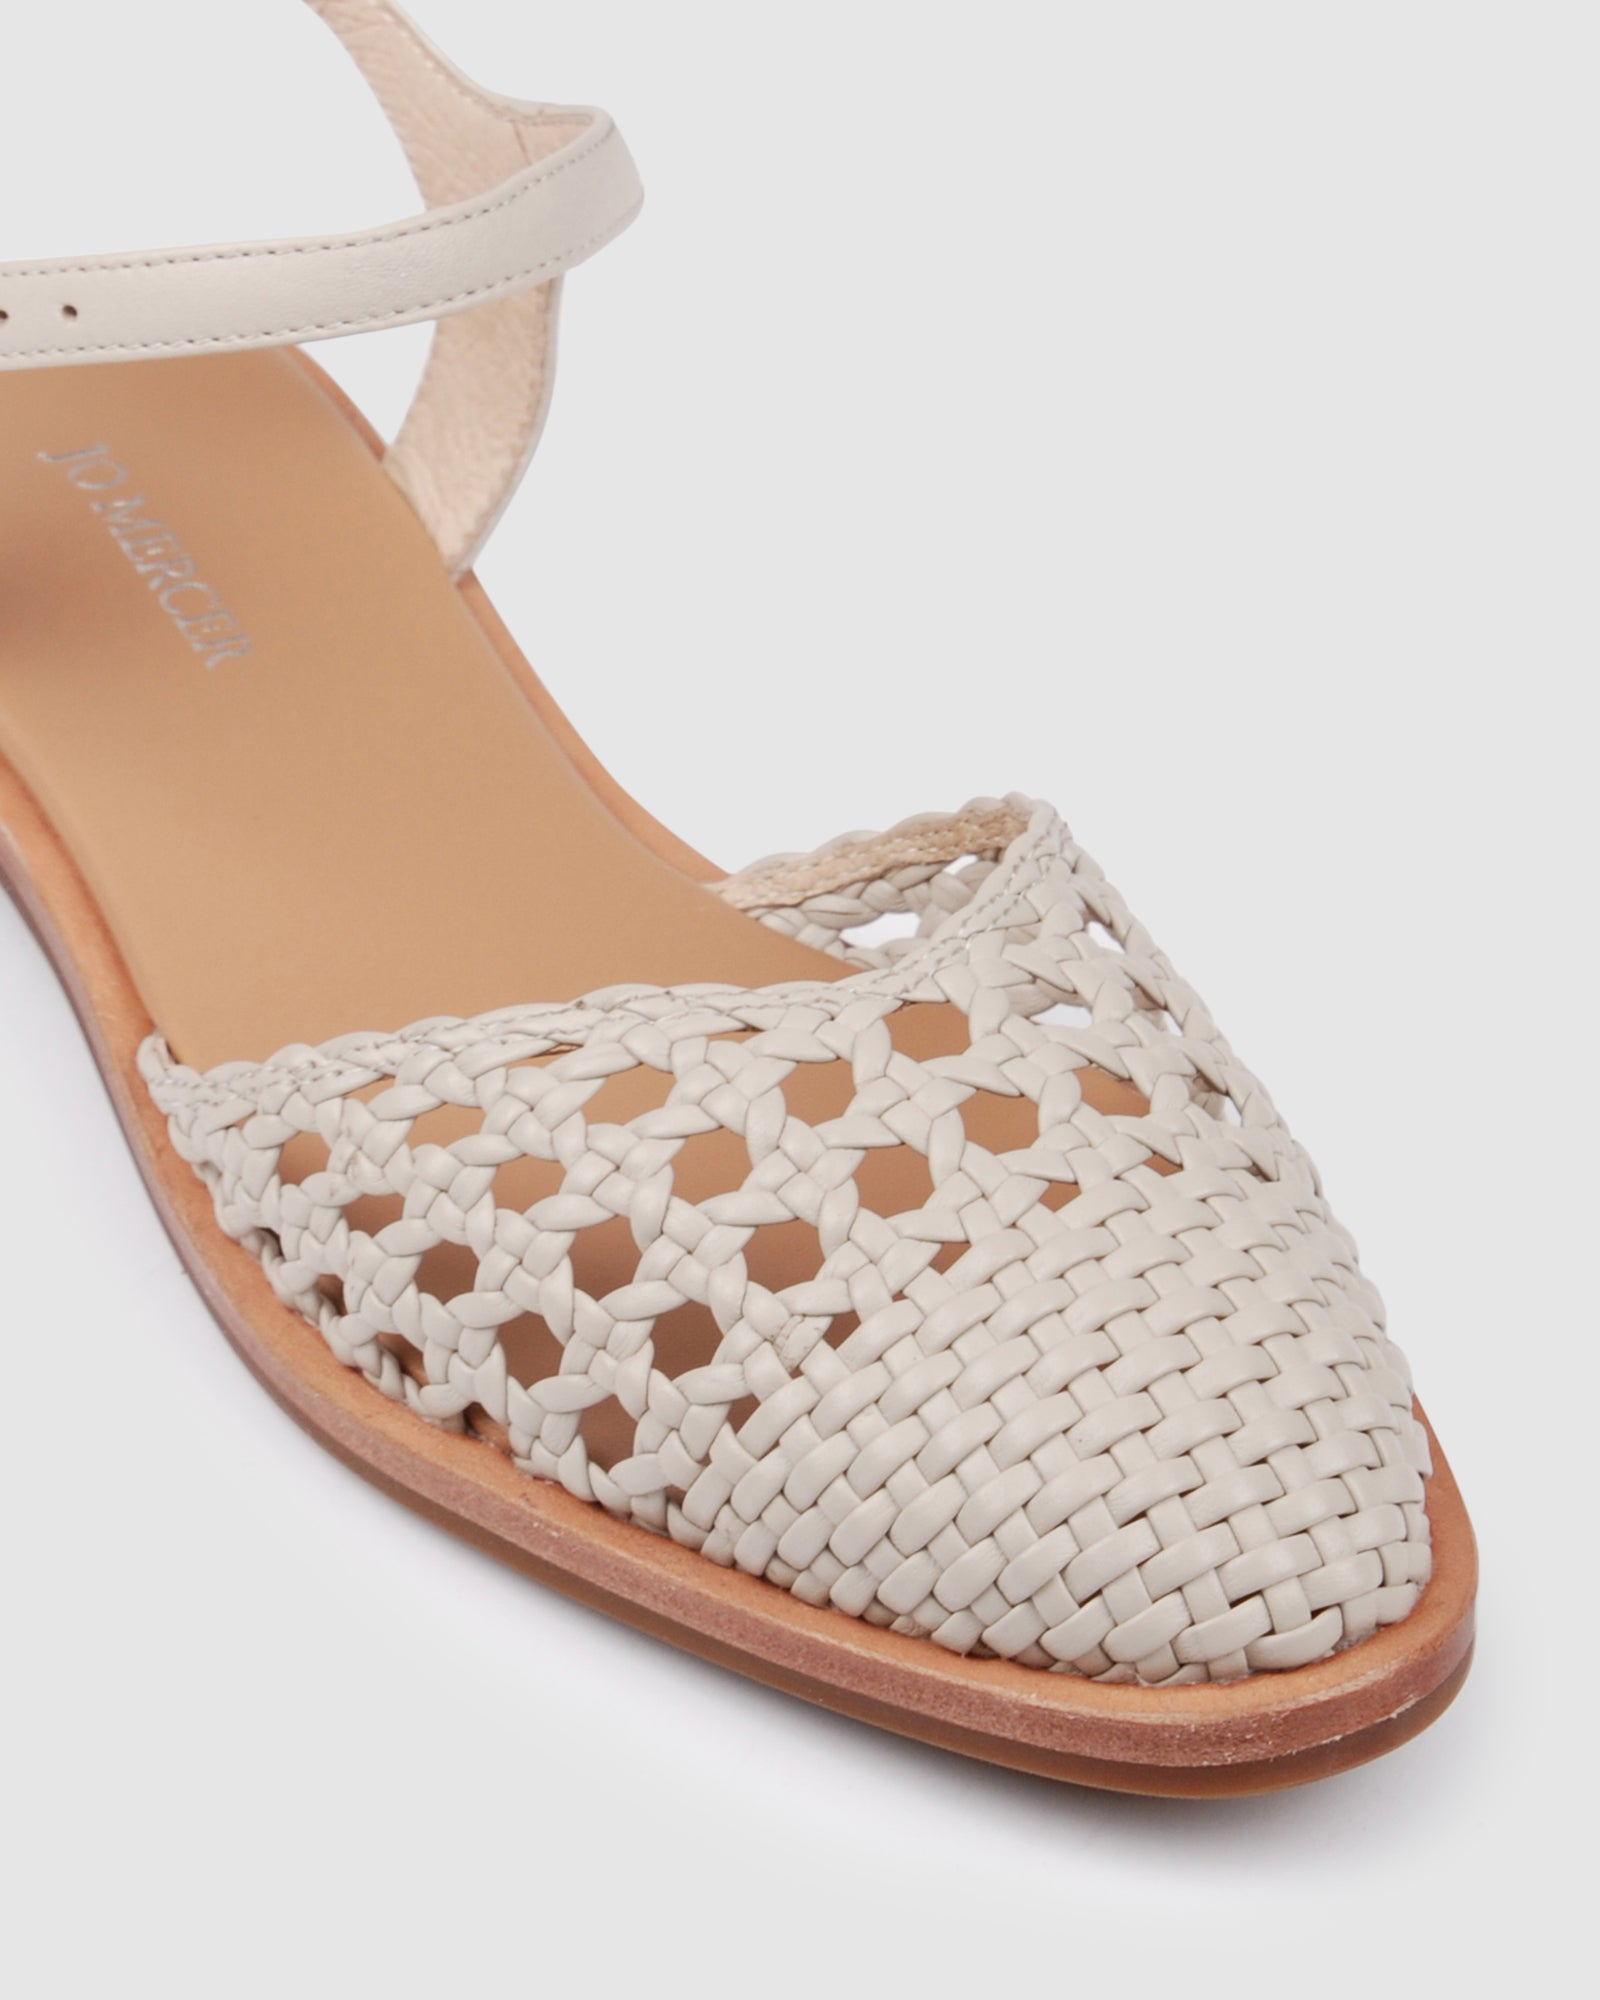 WEMBLEY CASUAL FLATS BONE LEATHER